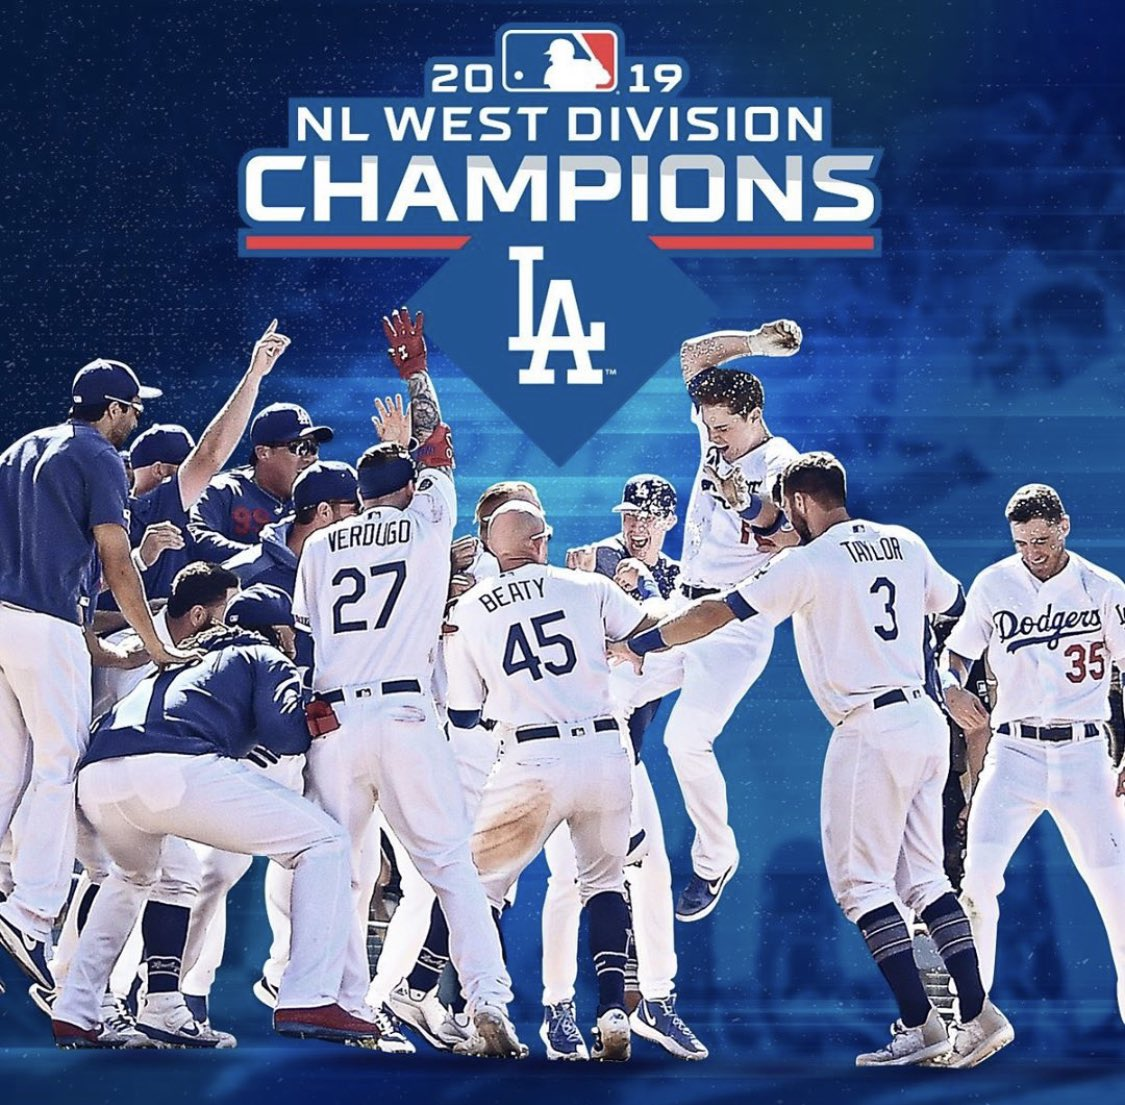 @timcates's photo on #NLWestChamps